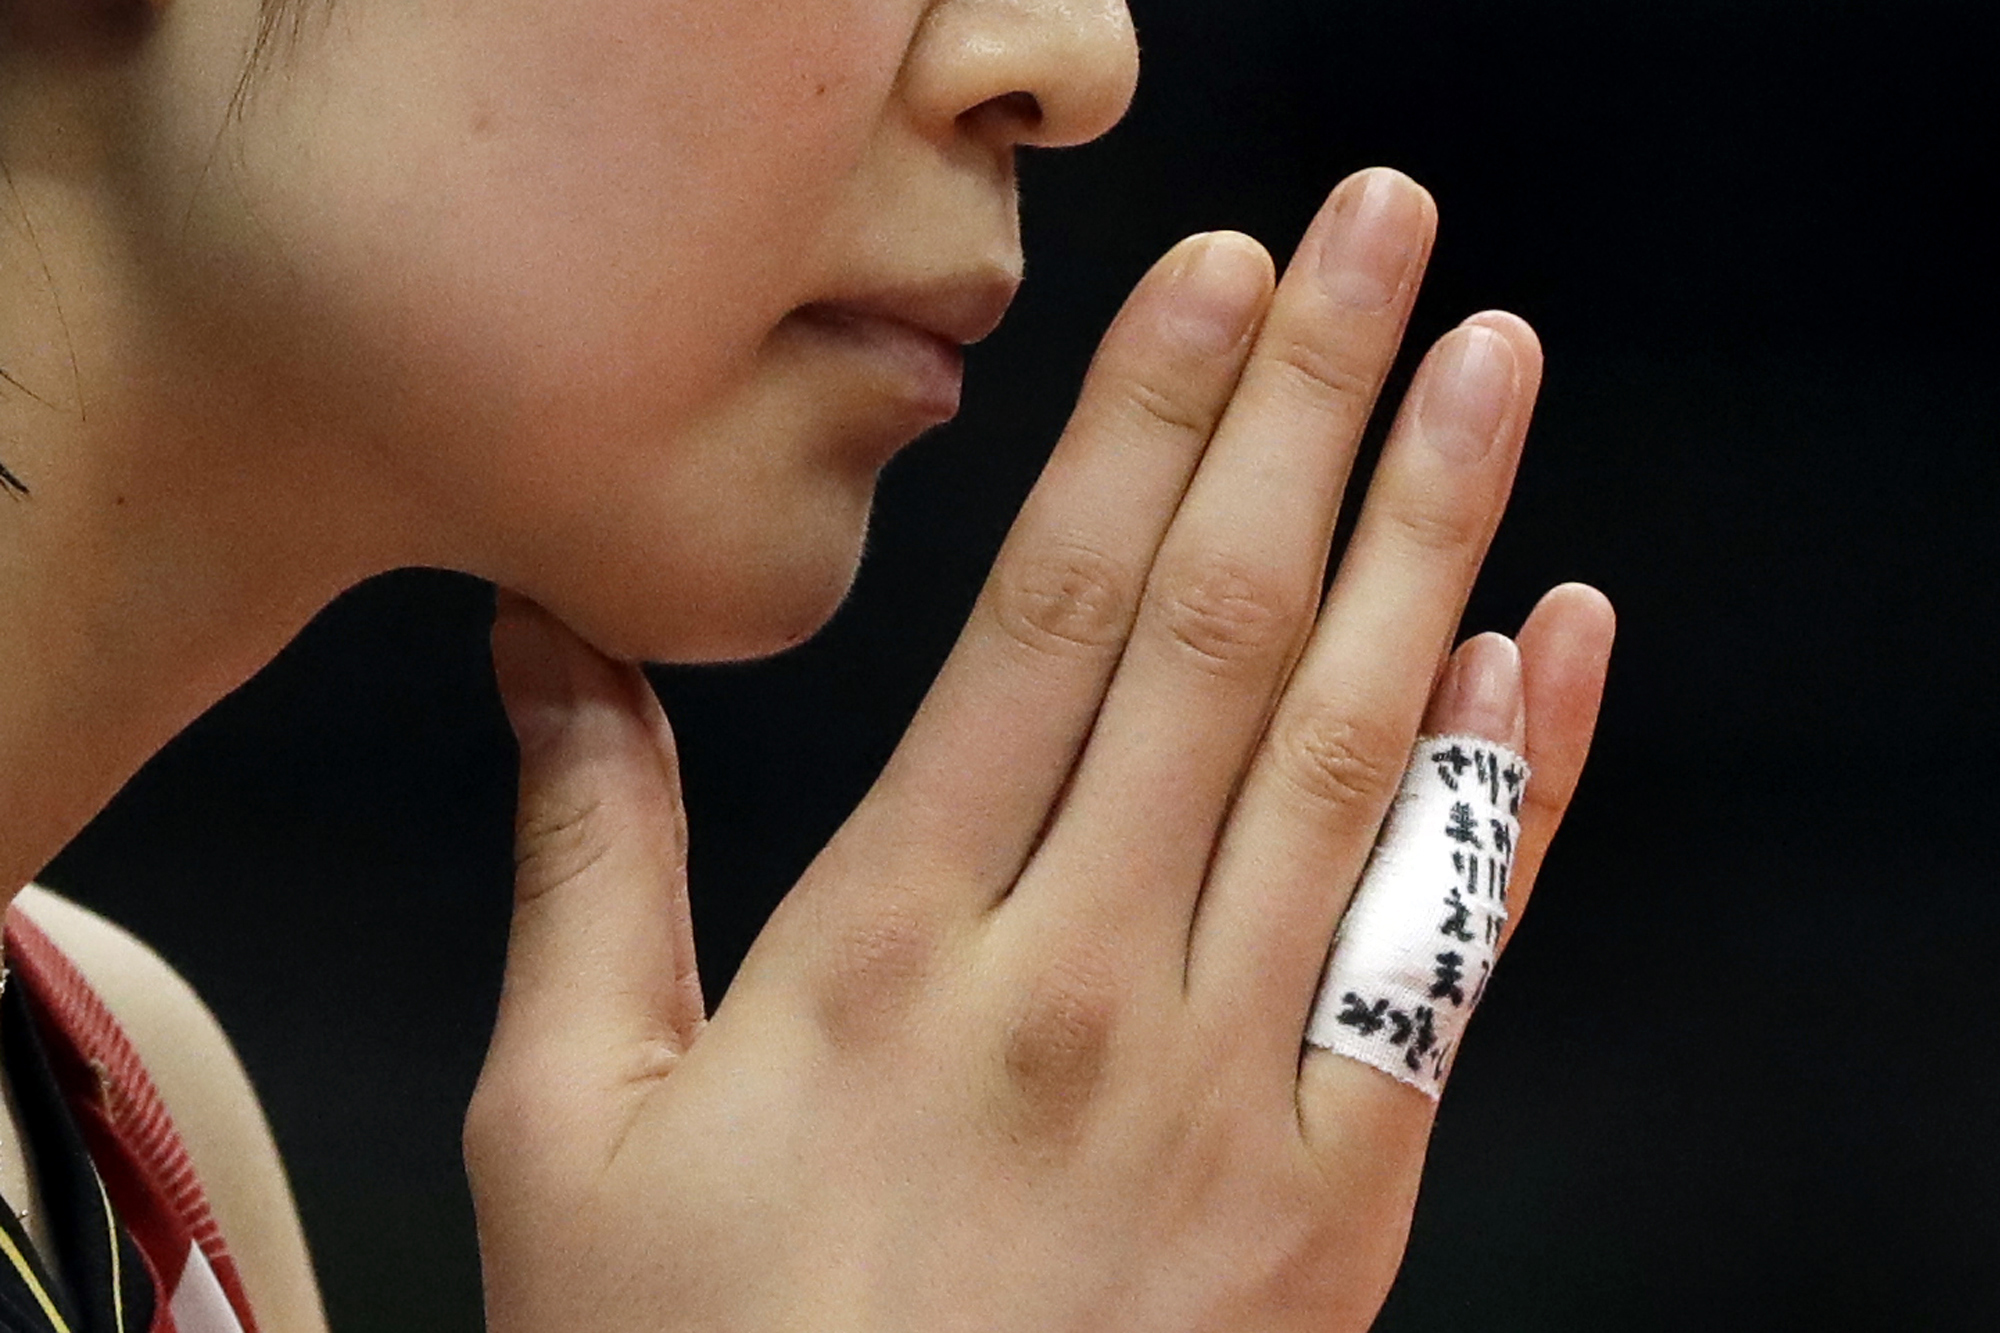 Saori Kimura raises her hand to her face as she awaits the next serve during a women's preliminary volleyball match against Argentina on Sunday at the 2016 Summer Olympics in Rio de Janeiro. The names of teammates who did not make the final Olympic roster are written on bandages on her fingers. | AP